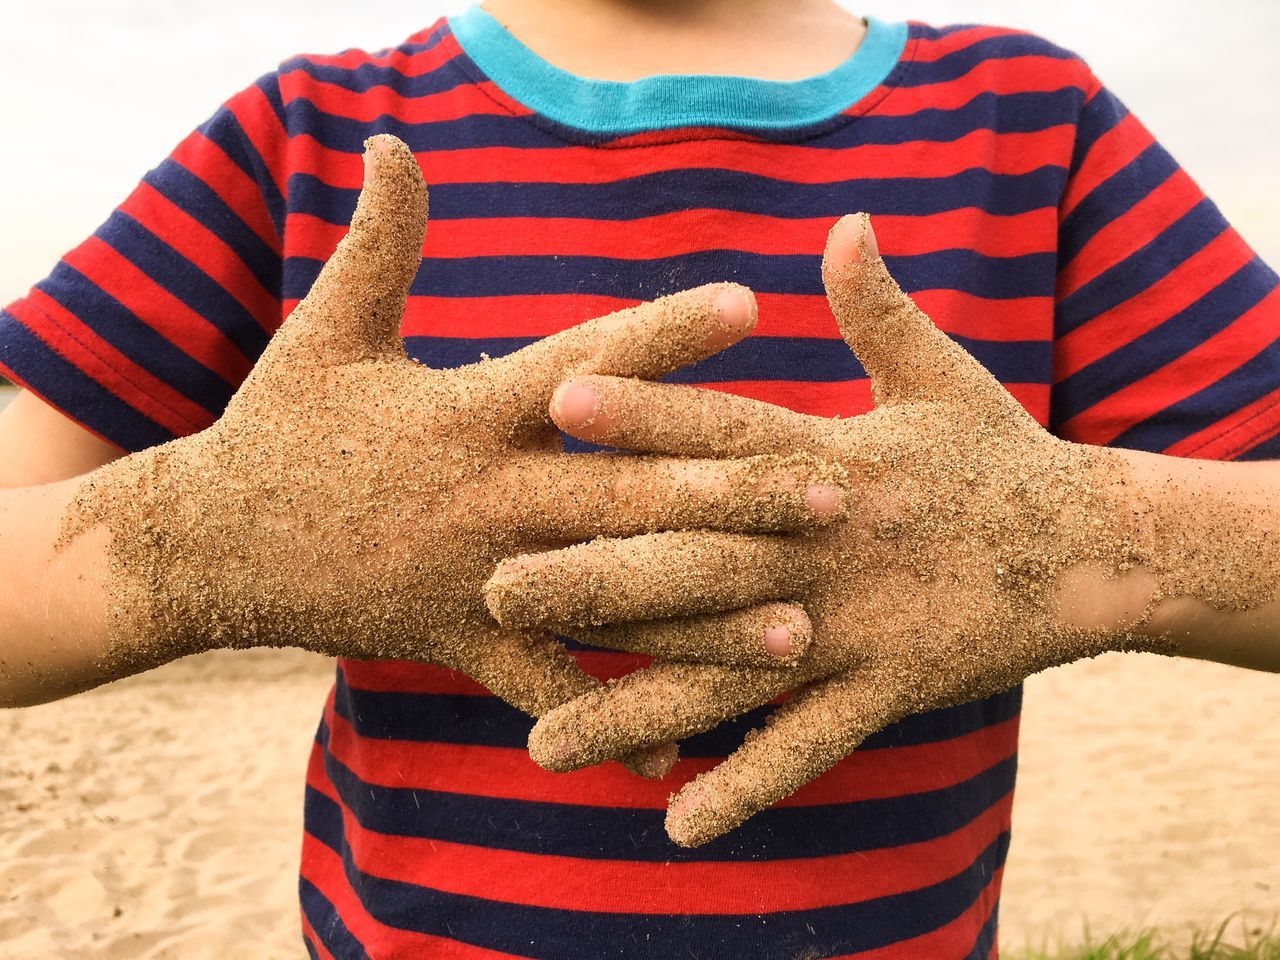 Midsection Of Boy With Dirty Hands Clasped At Sandy Beach